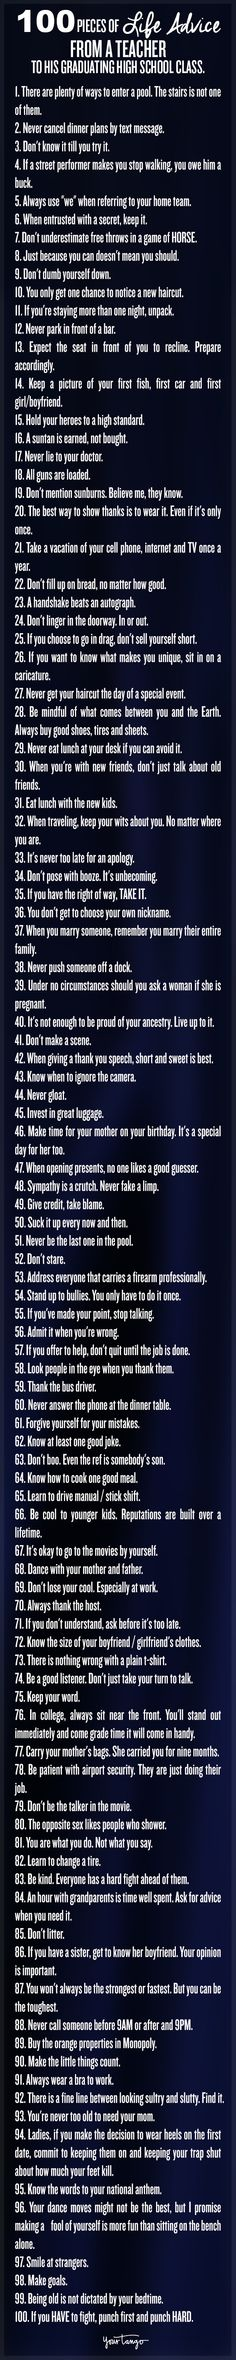 100 Pieces Of Life Advice Everyone Should Know (No Matter Your Age)